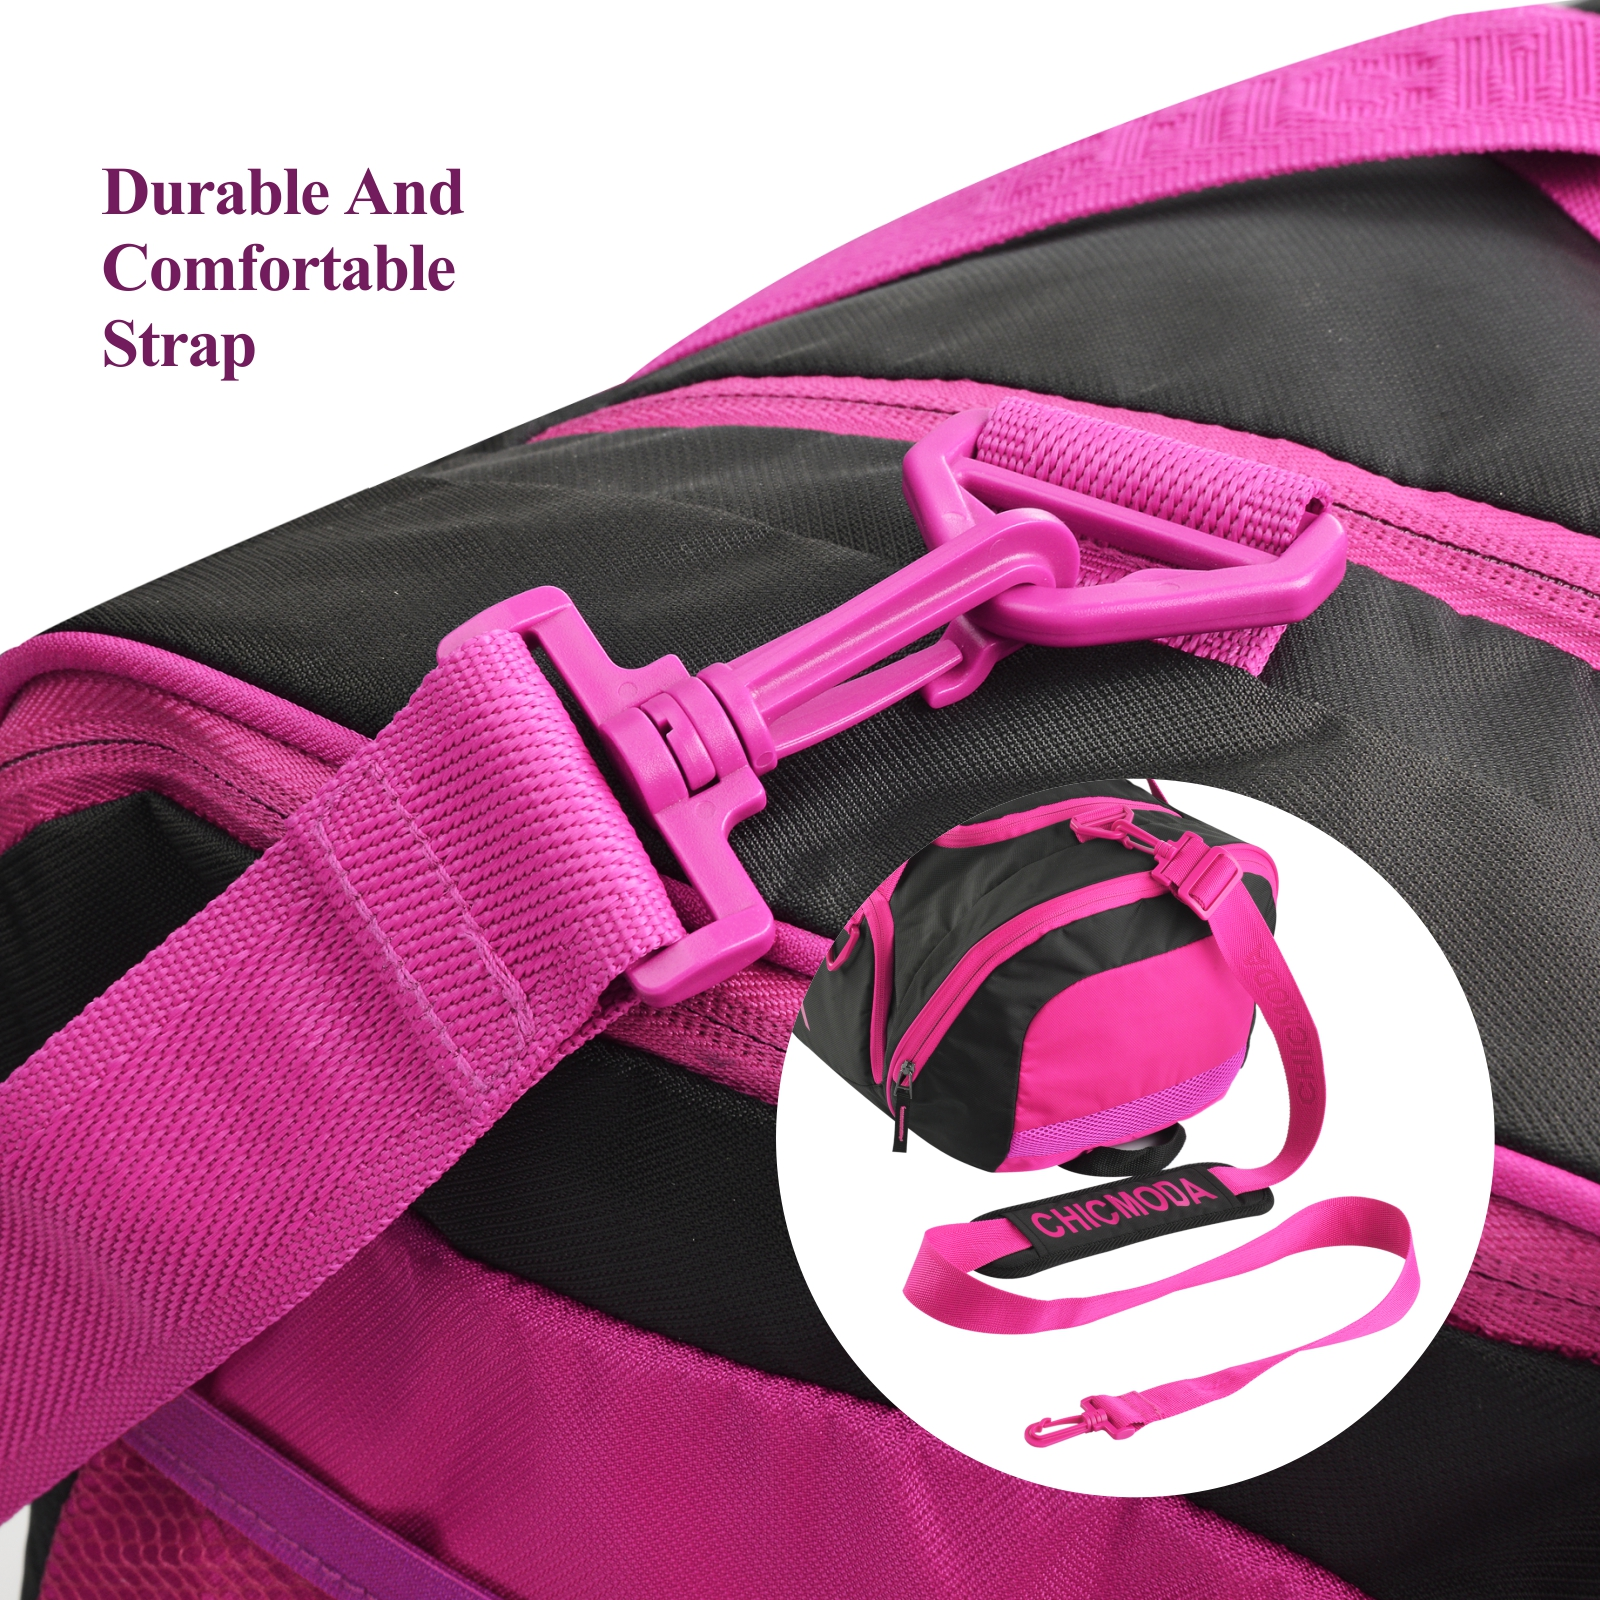 Gym-Duffel-Bag-Sports-Travel-Luggage-Bag-with-Shoe-Compartment-Large-Capacity